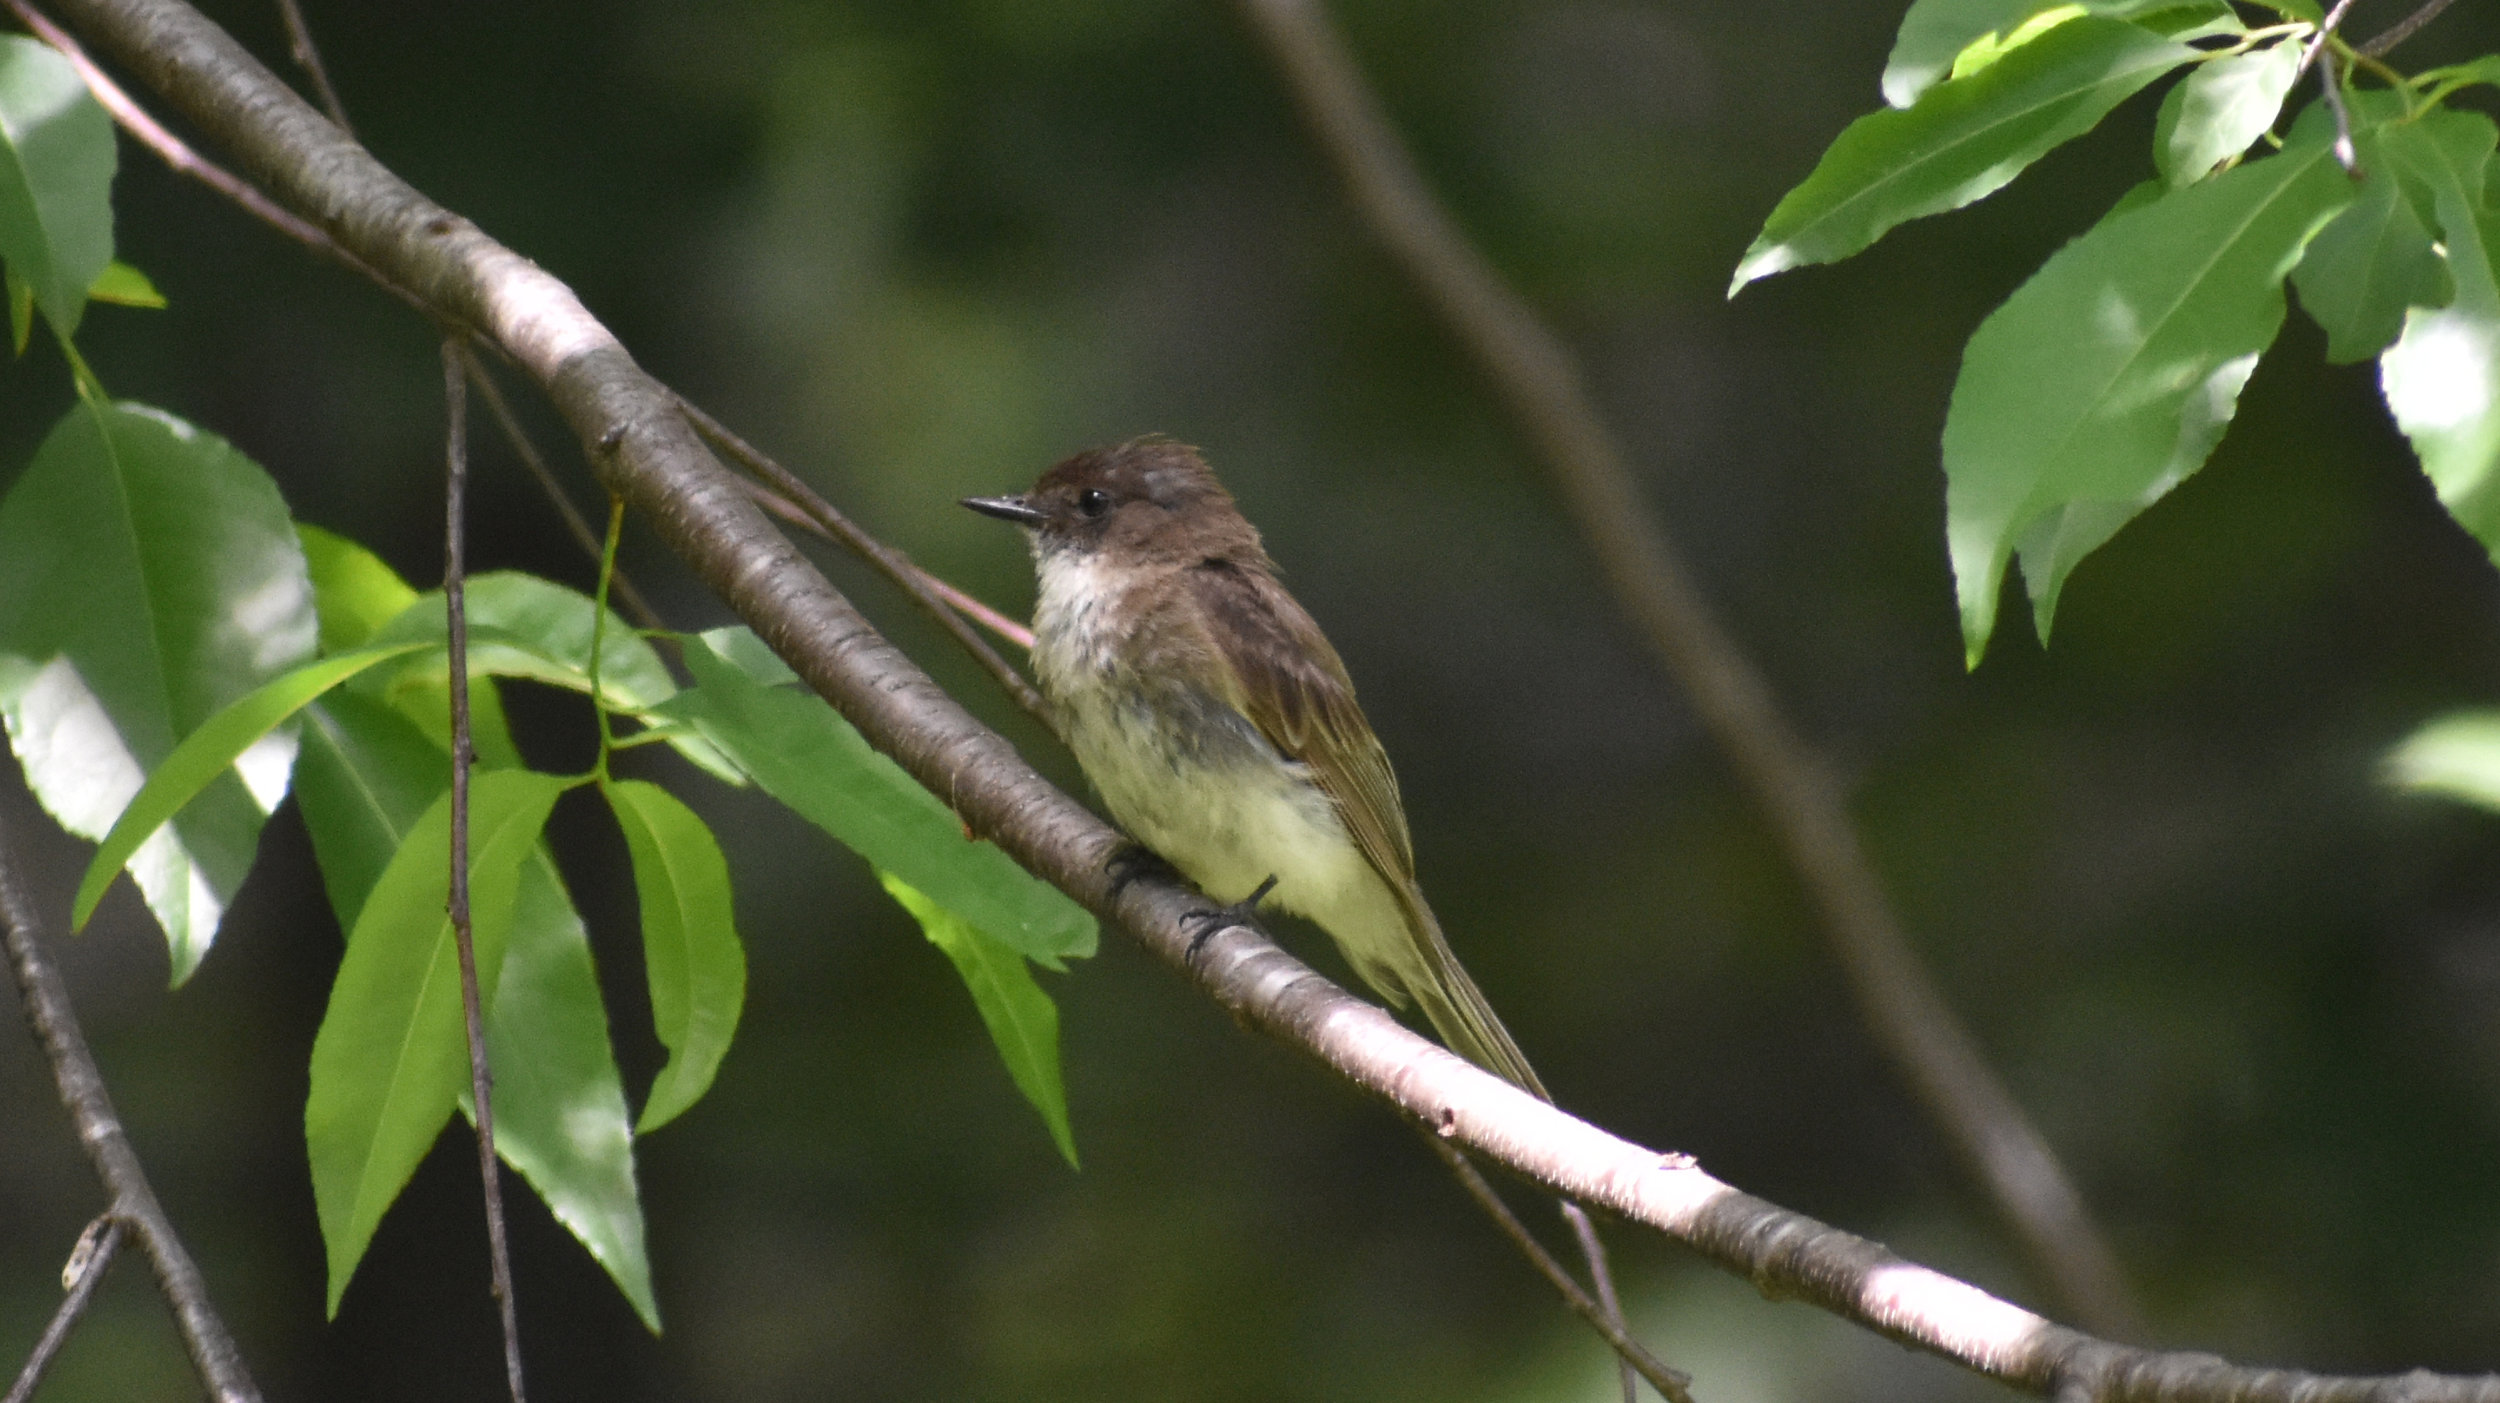 Eastern Phoebe in Wild Black Cherry